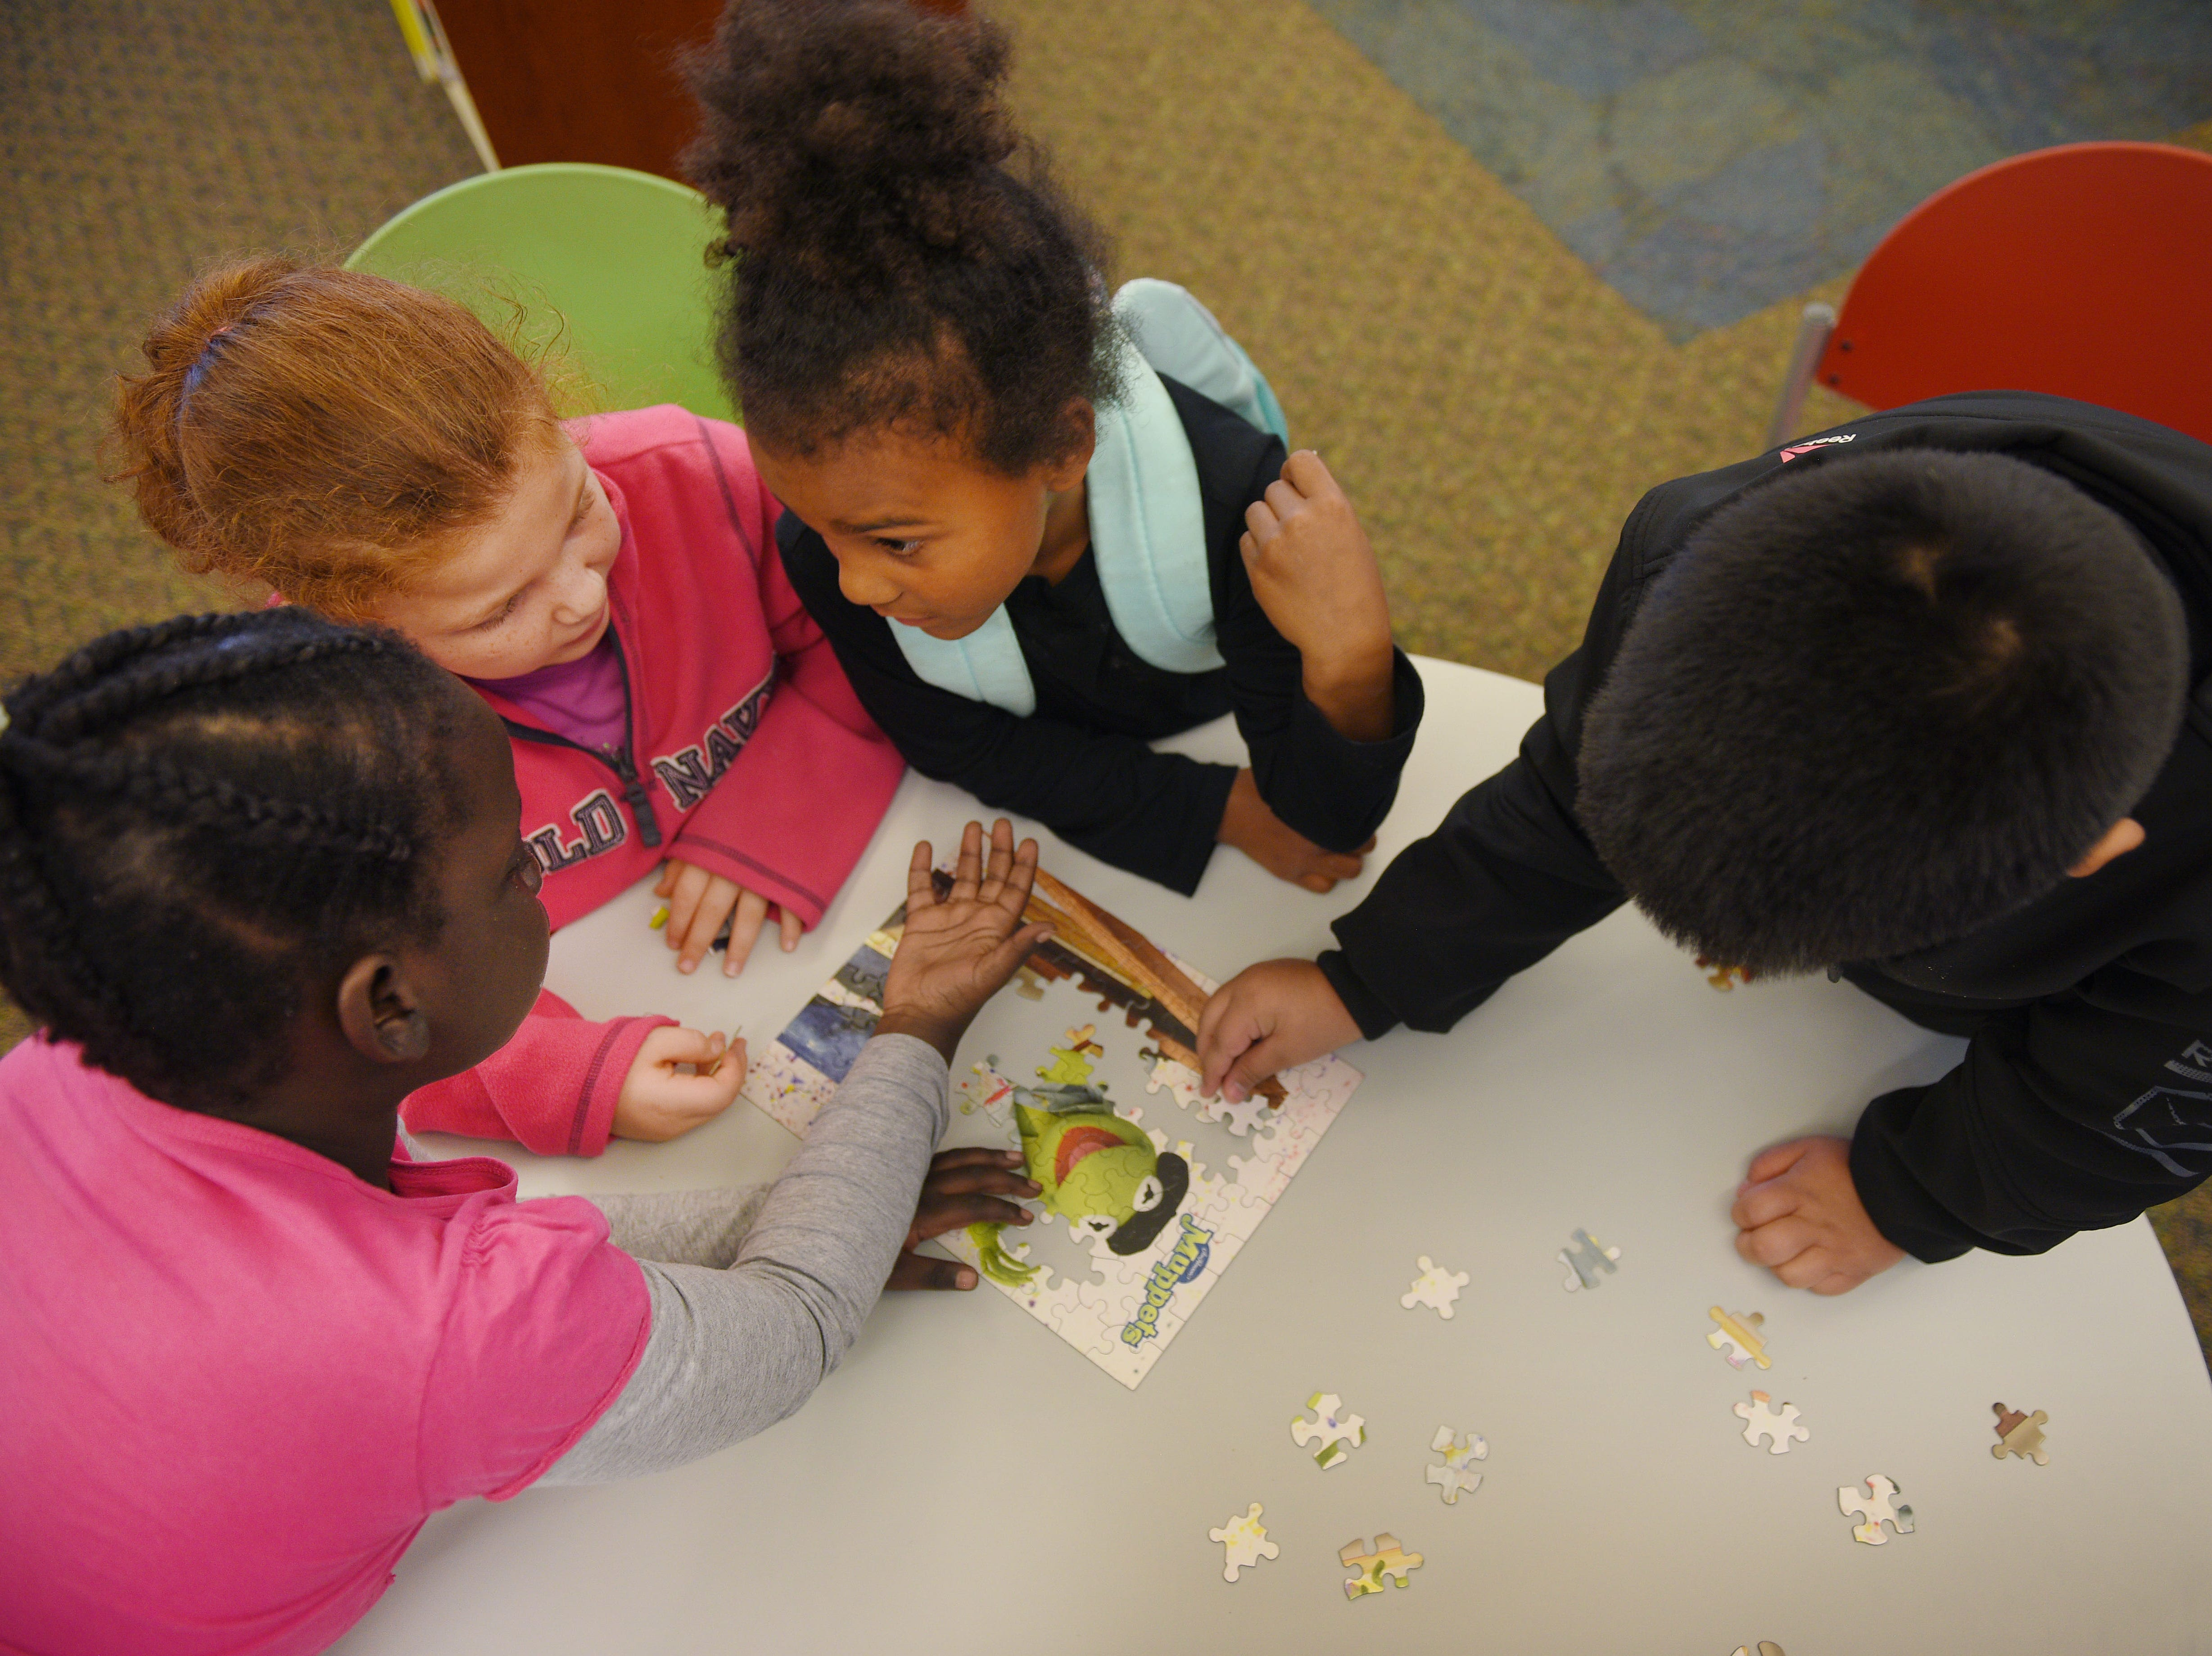 Kids work on a puzzle at the Oak View Library after school Wednesday, Sept 26, at the library in Sioux Falls.